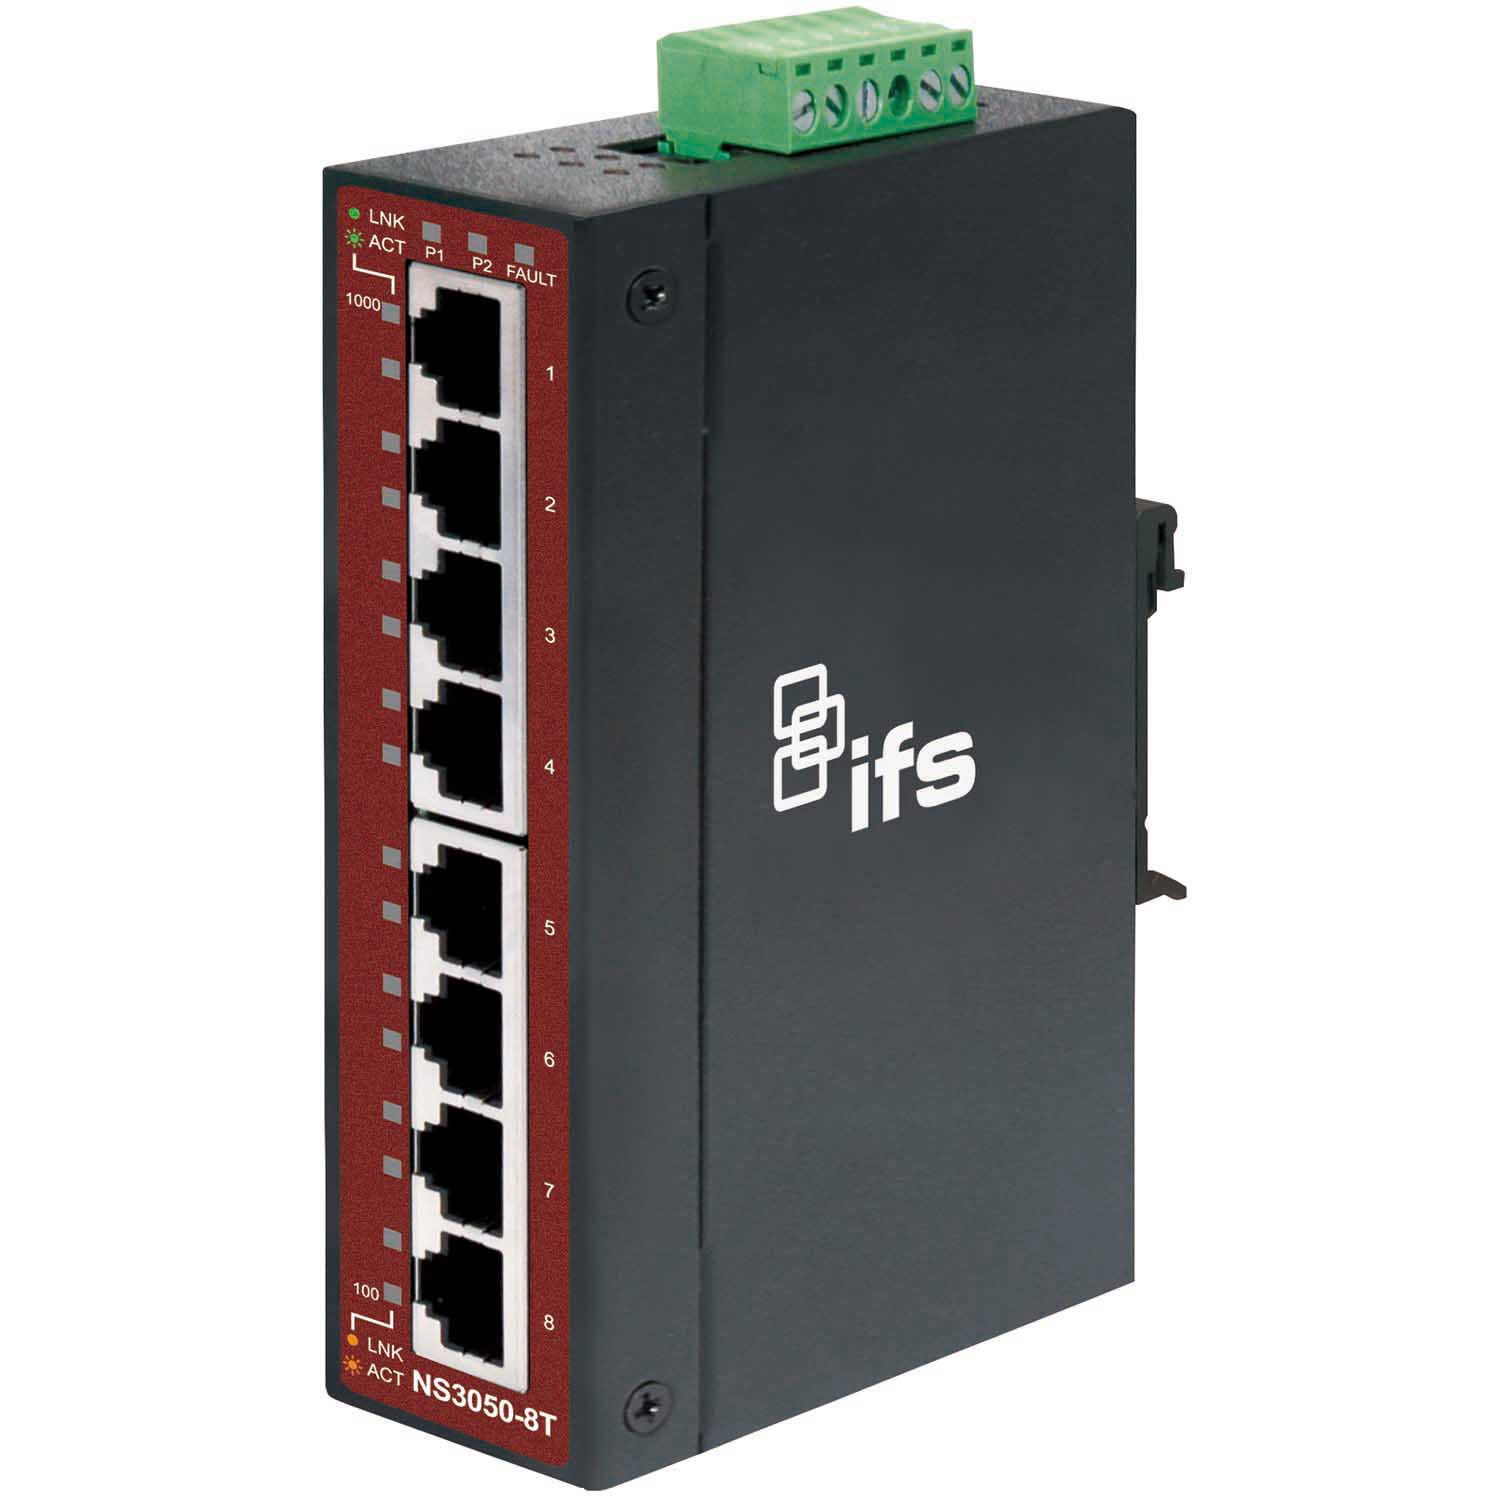 Ifs 8 Port Unmanaged Industrial Ethernet Switch